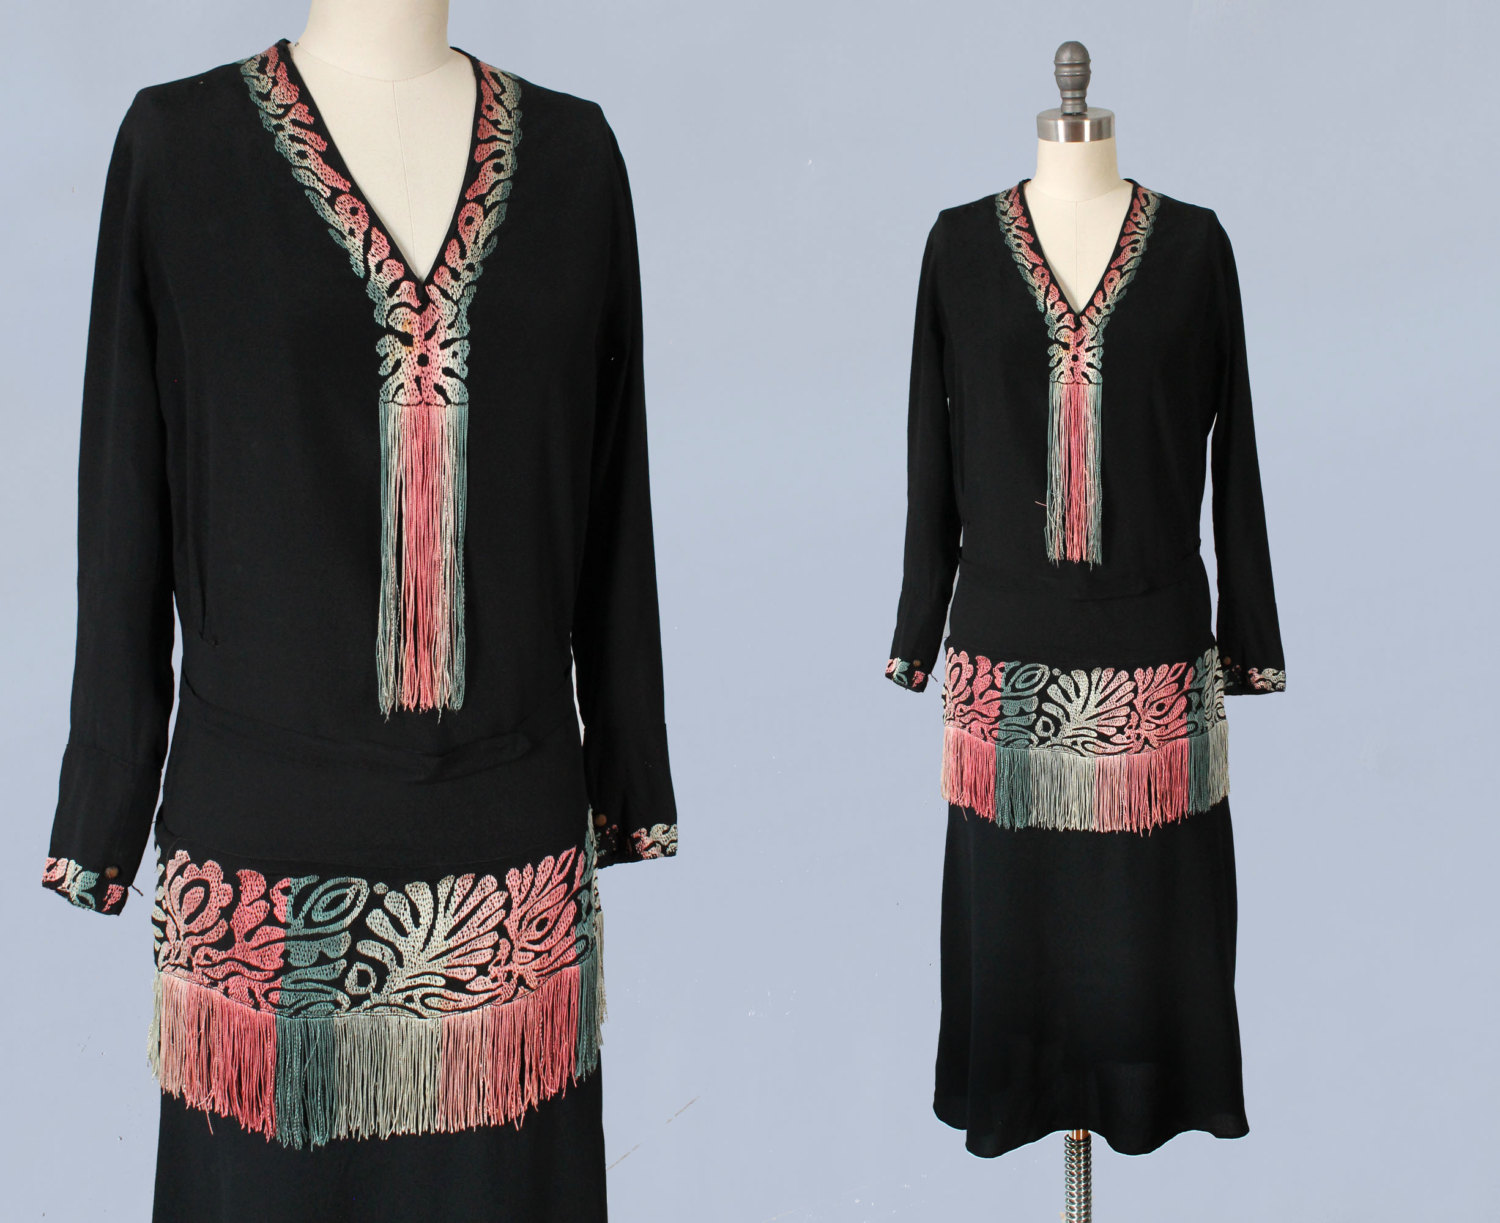 Black crepe dress with embroidery and fringe details. 1920s.